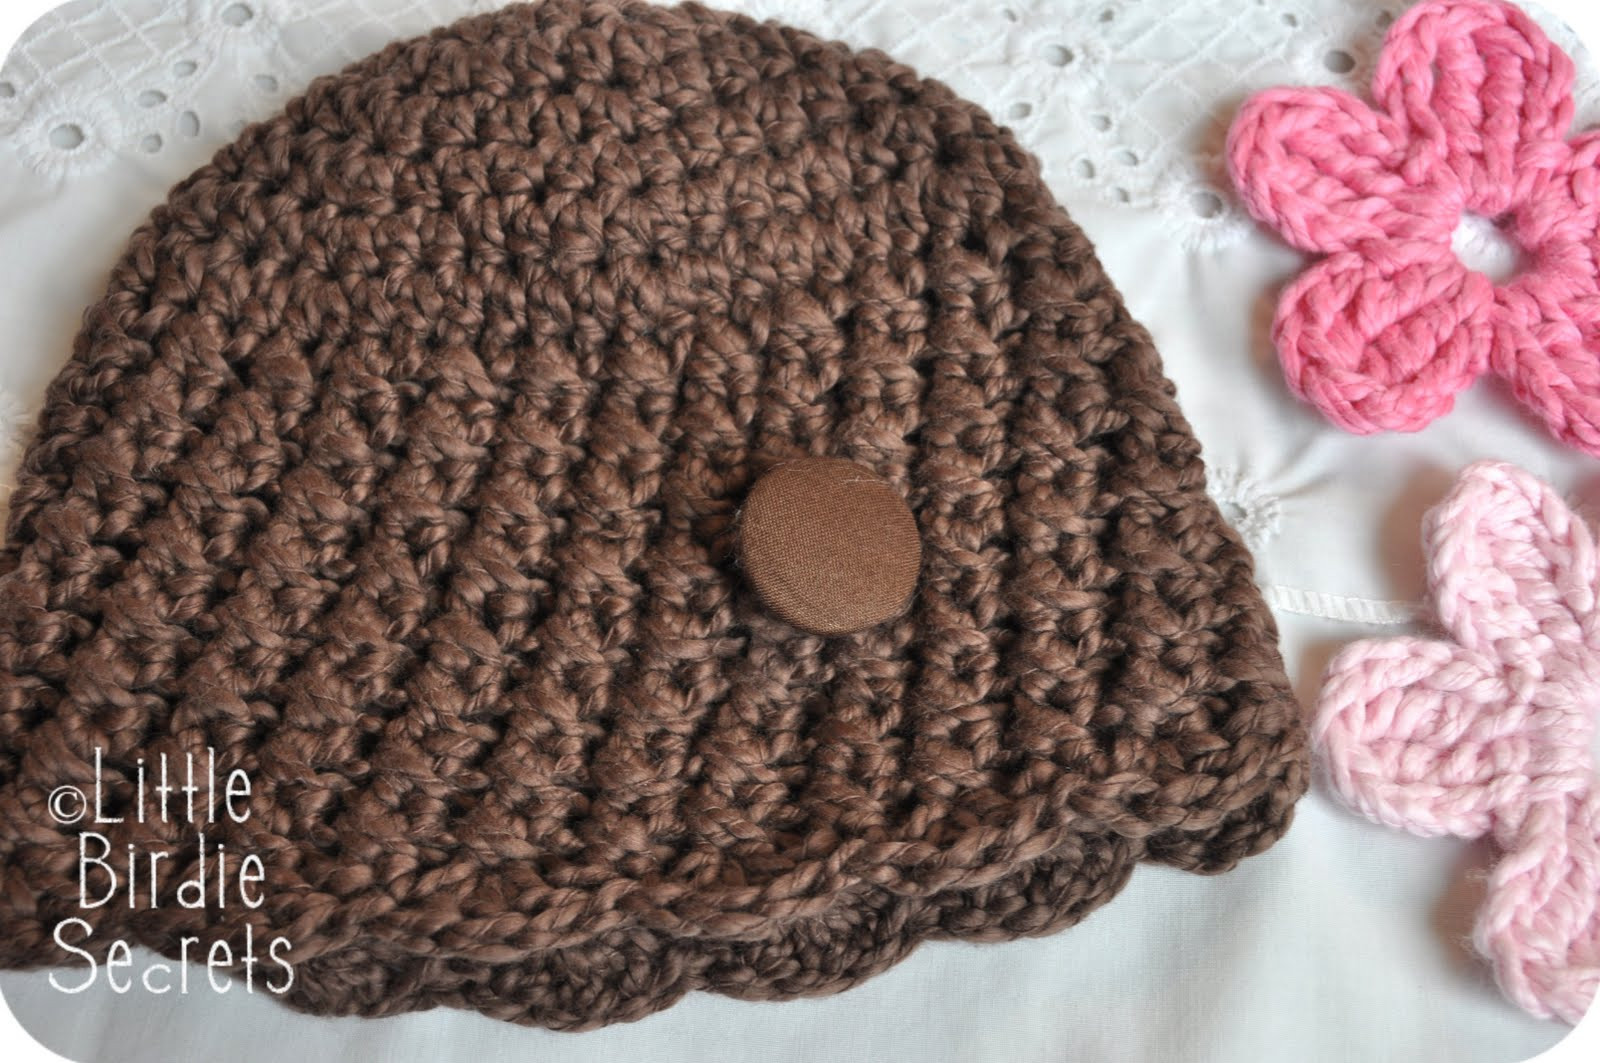 Unique New Baby Hat and Bootie Patterns In the Shop Plus A Free Crochet Flowers for Hats Free Patterns Of Luxury 25 Best Ideas About Crochet Hats On Pinterest Crochet Flowers for Hats Free Patterns